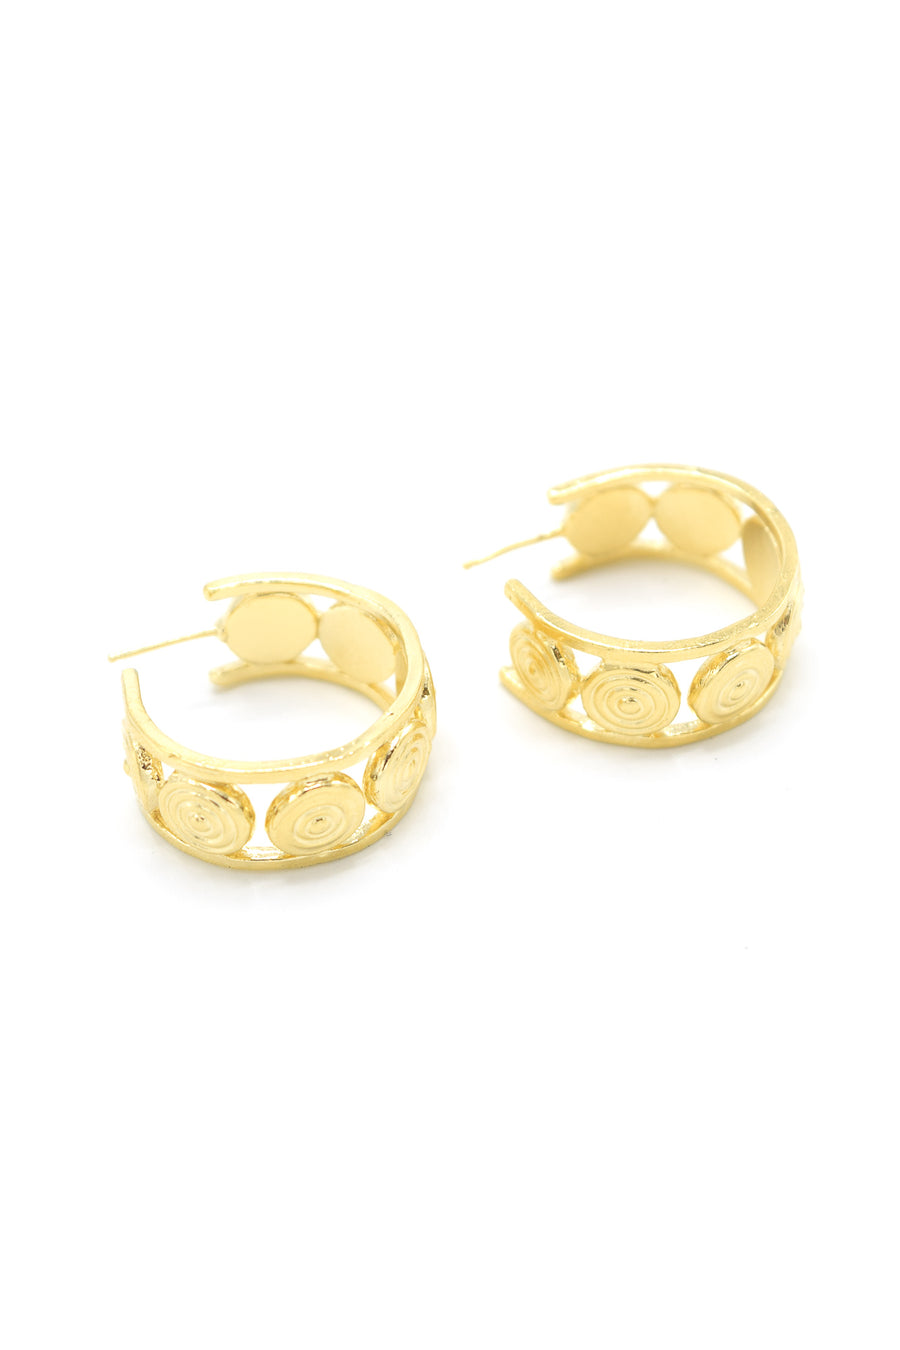 Aluna mini hoop earrings in 14k yellow gold. Hoops with circular design and are 1 inch in diameter. Handmade by local jewelry designer, Nina Berenato, in Austin, Texas.